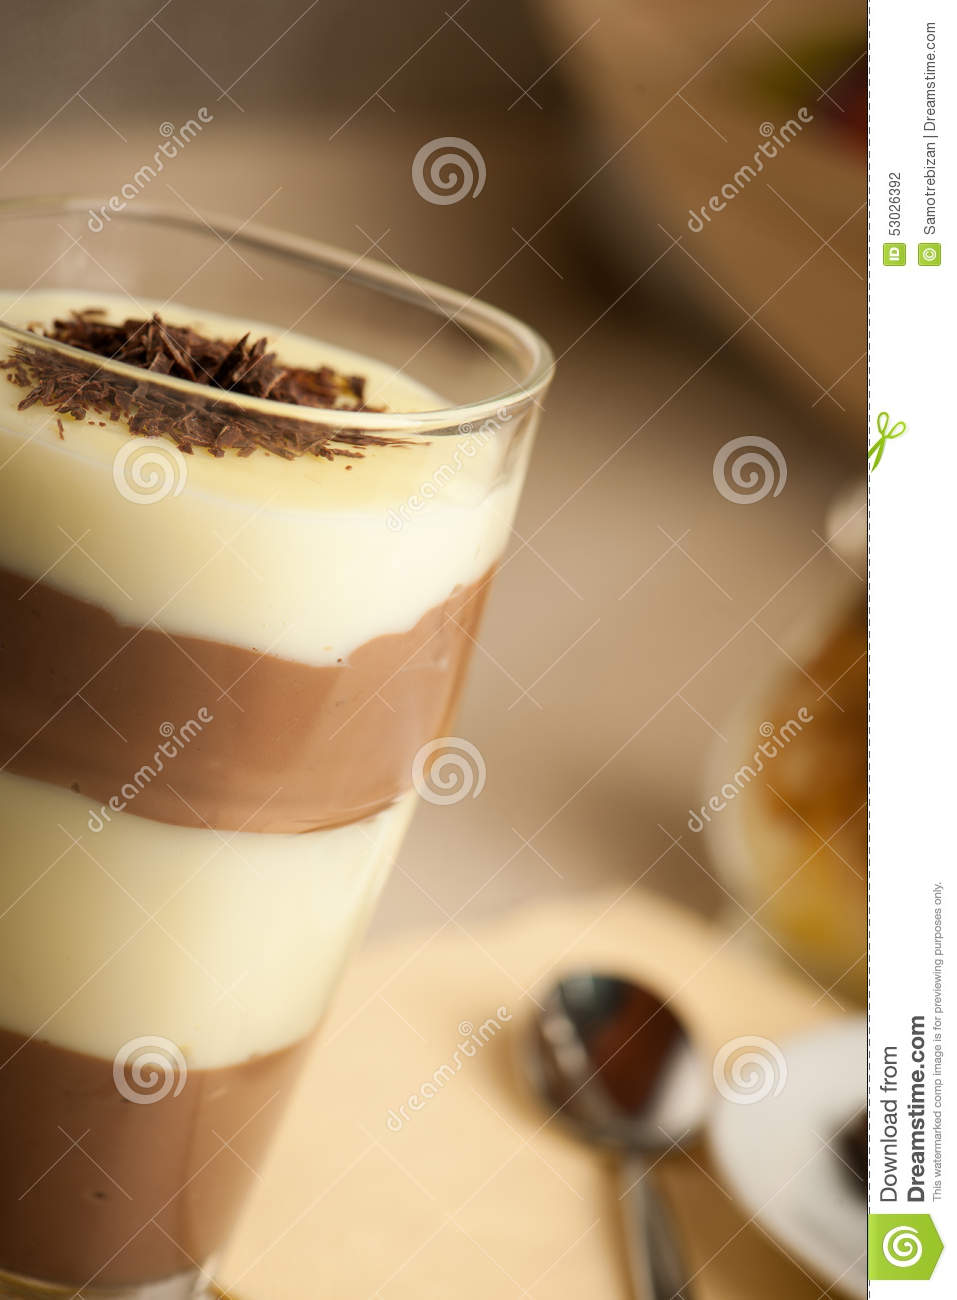 Mixed chocolate and vanilla pudding served in a glass decorated